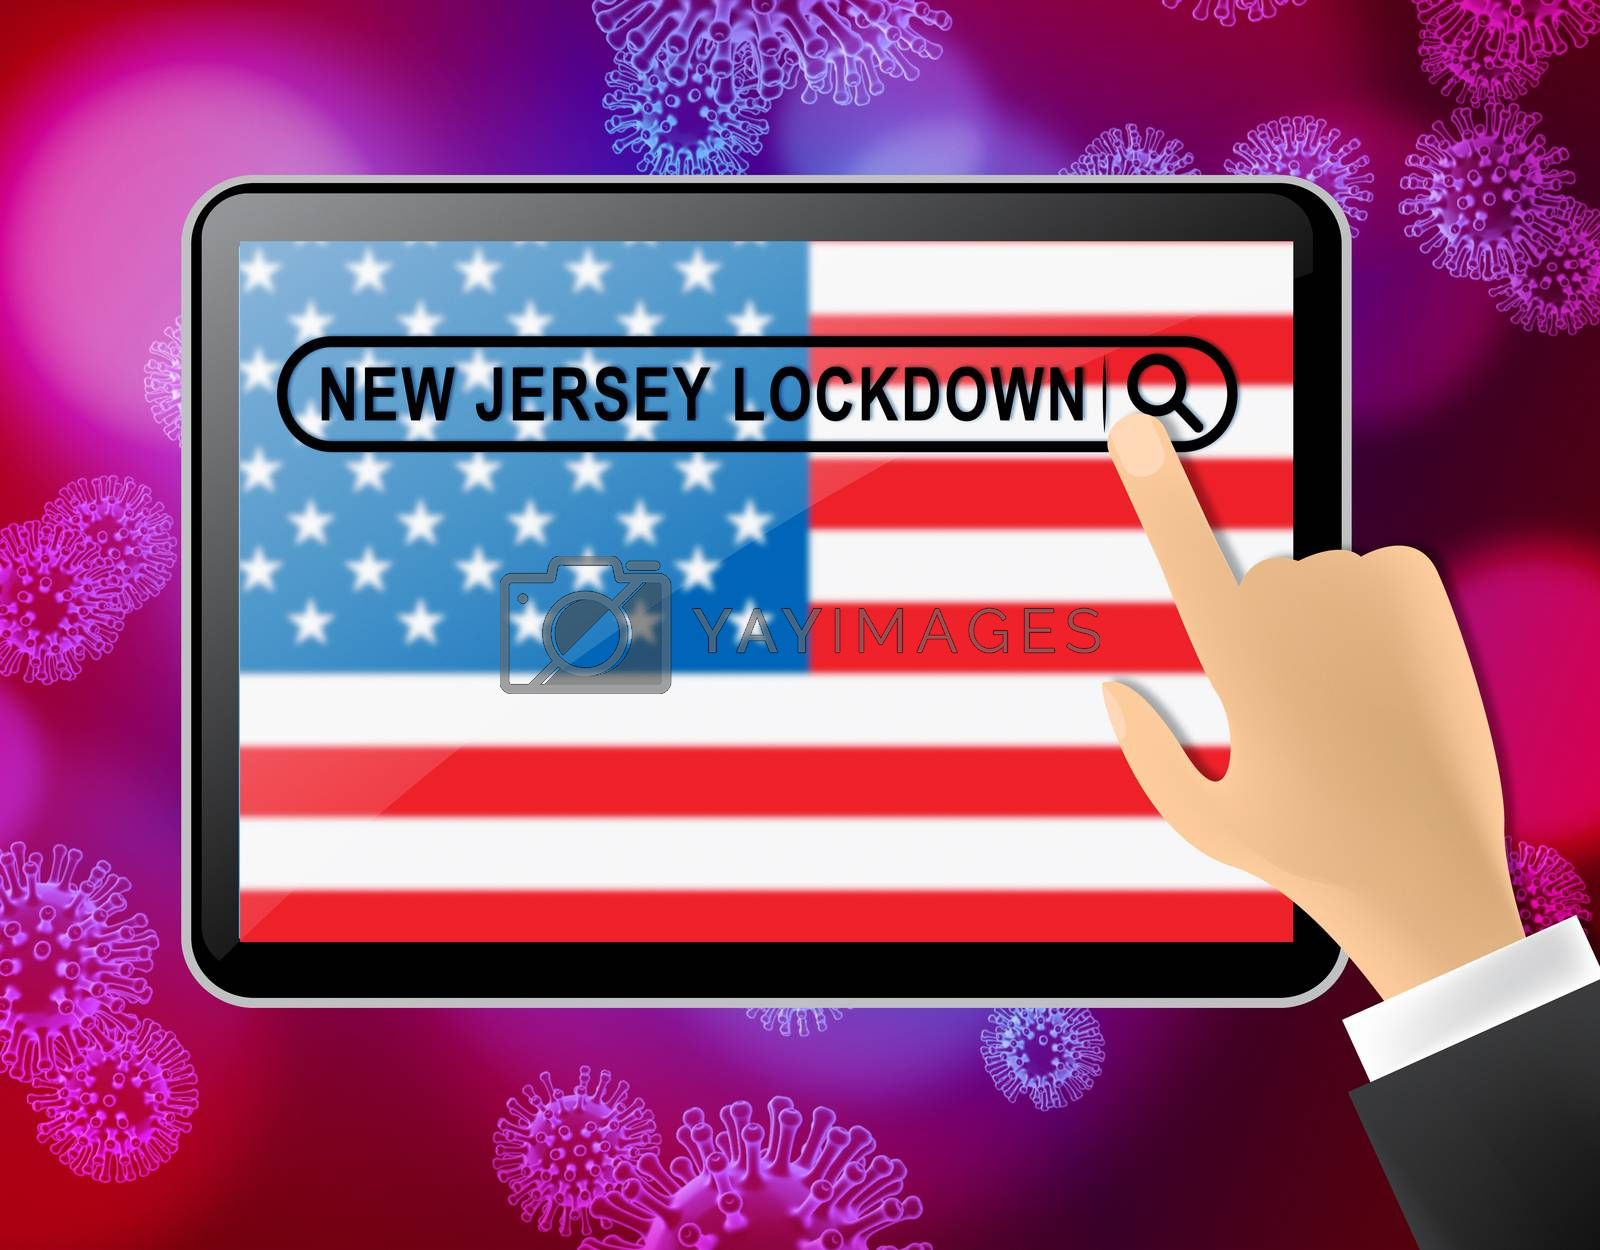 New Jersey lockdown news means curfew from coronavirus covid19 - by stuartmiles